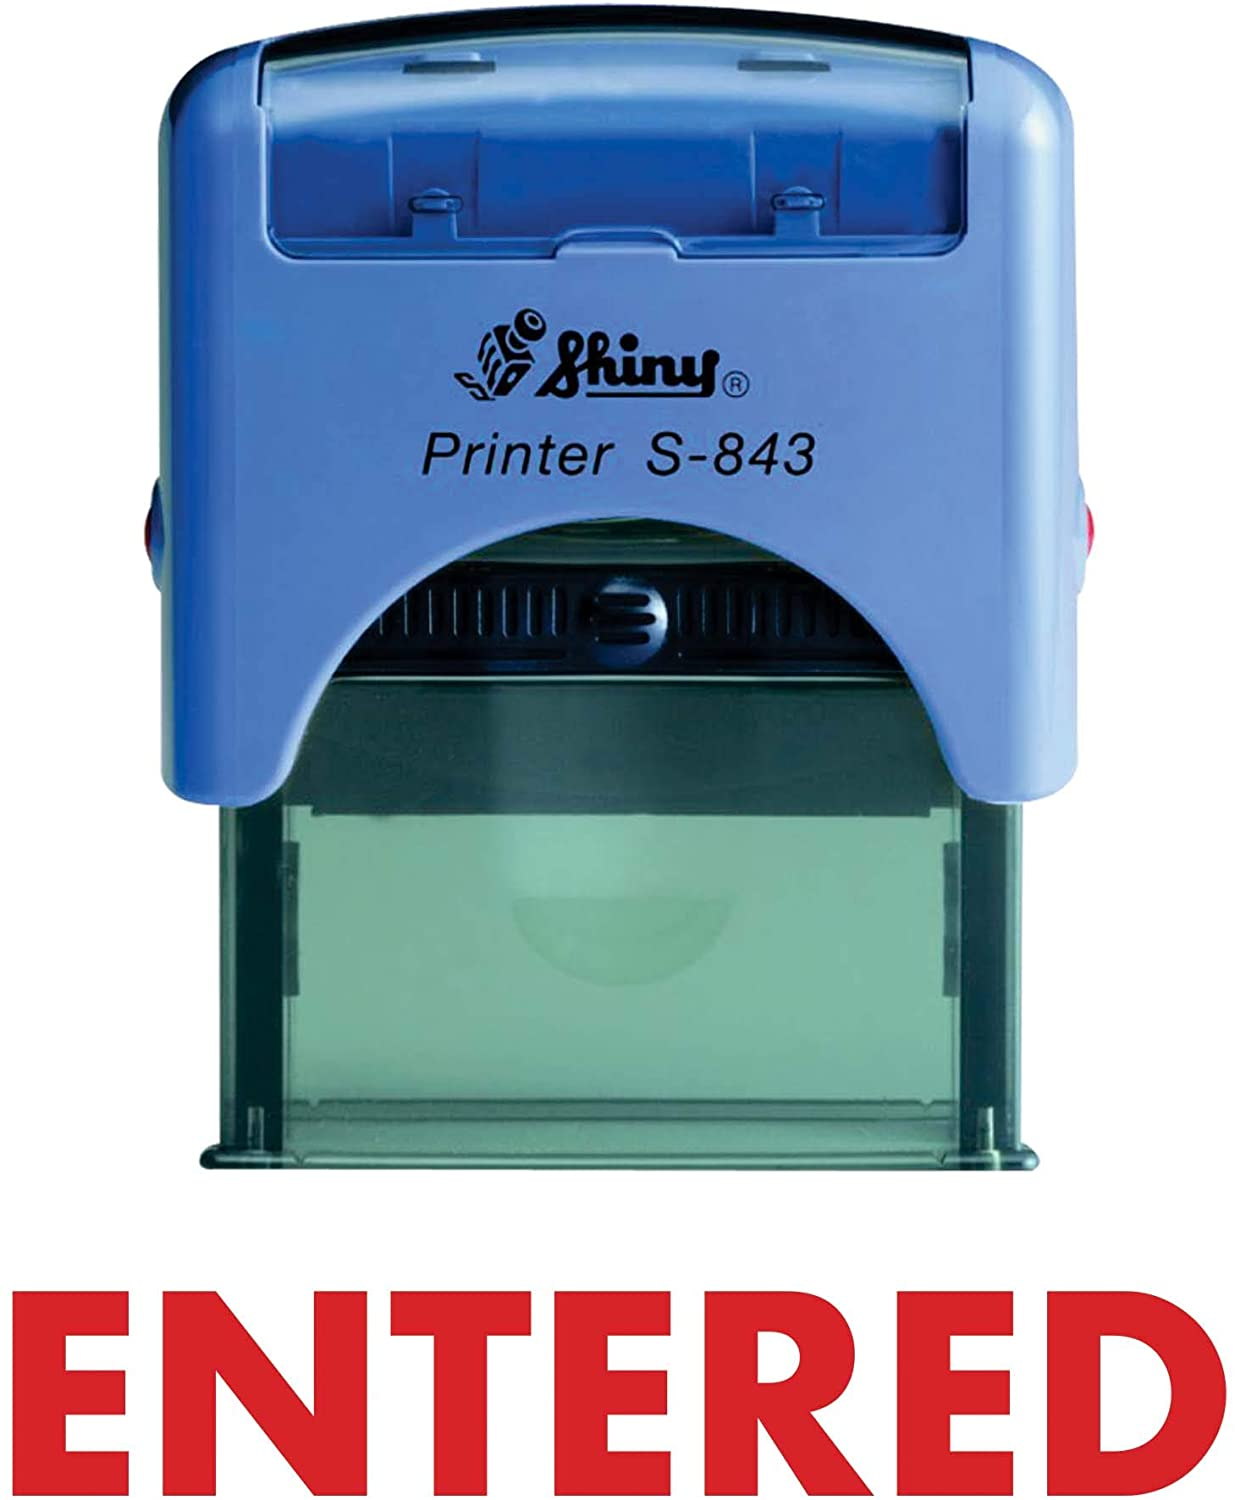 Entered Shiny Self Inking Rubber Stamp Office Stationary